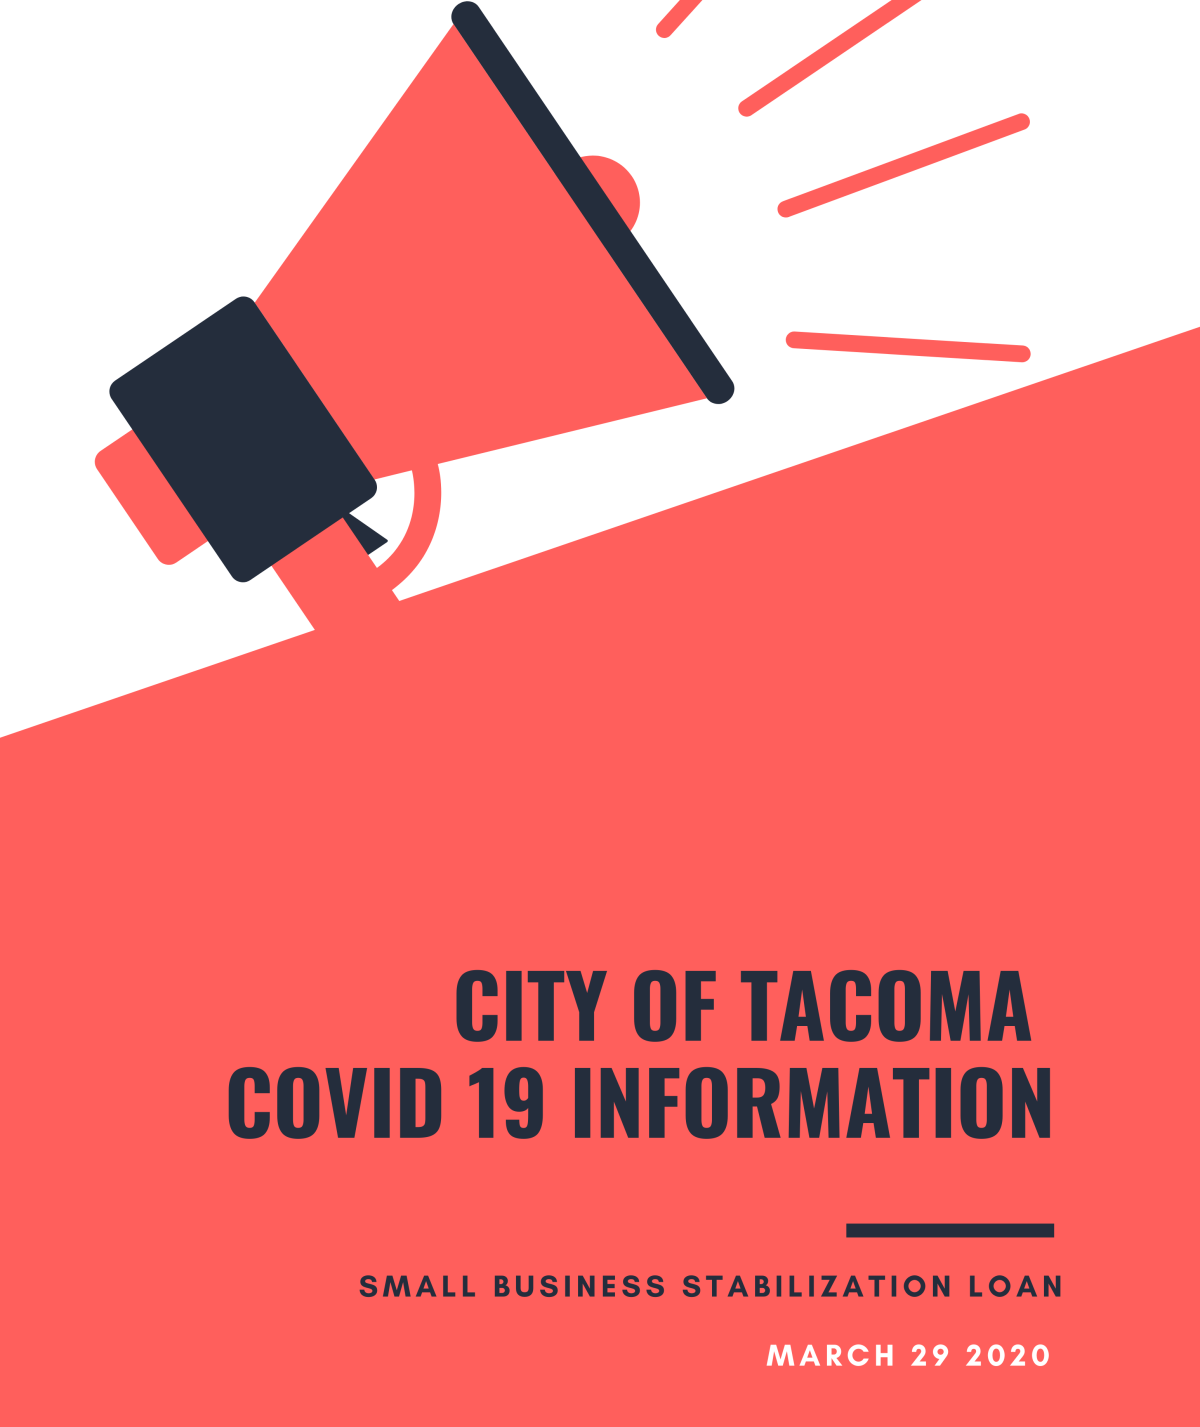 29Mar2020 New From City of Tacoma: Small Business Loan Information in 6 Languages